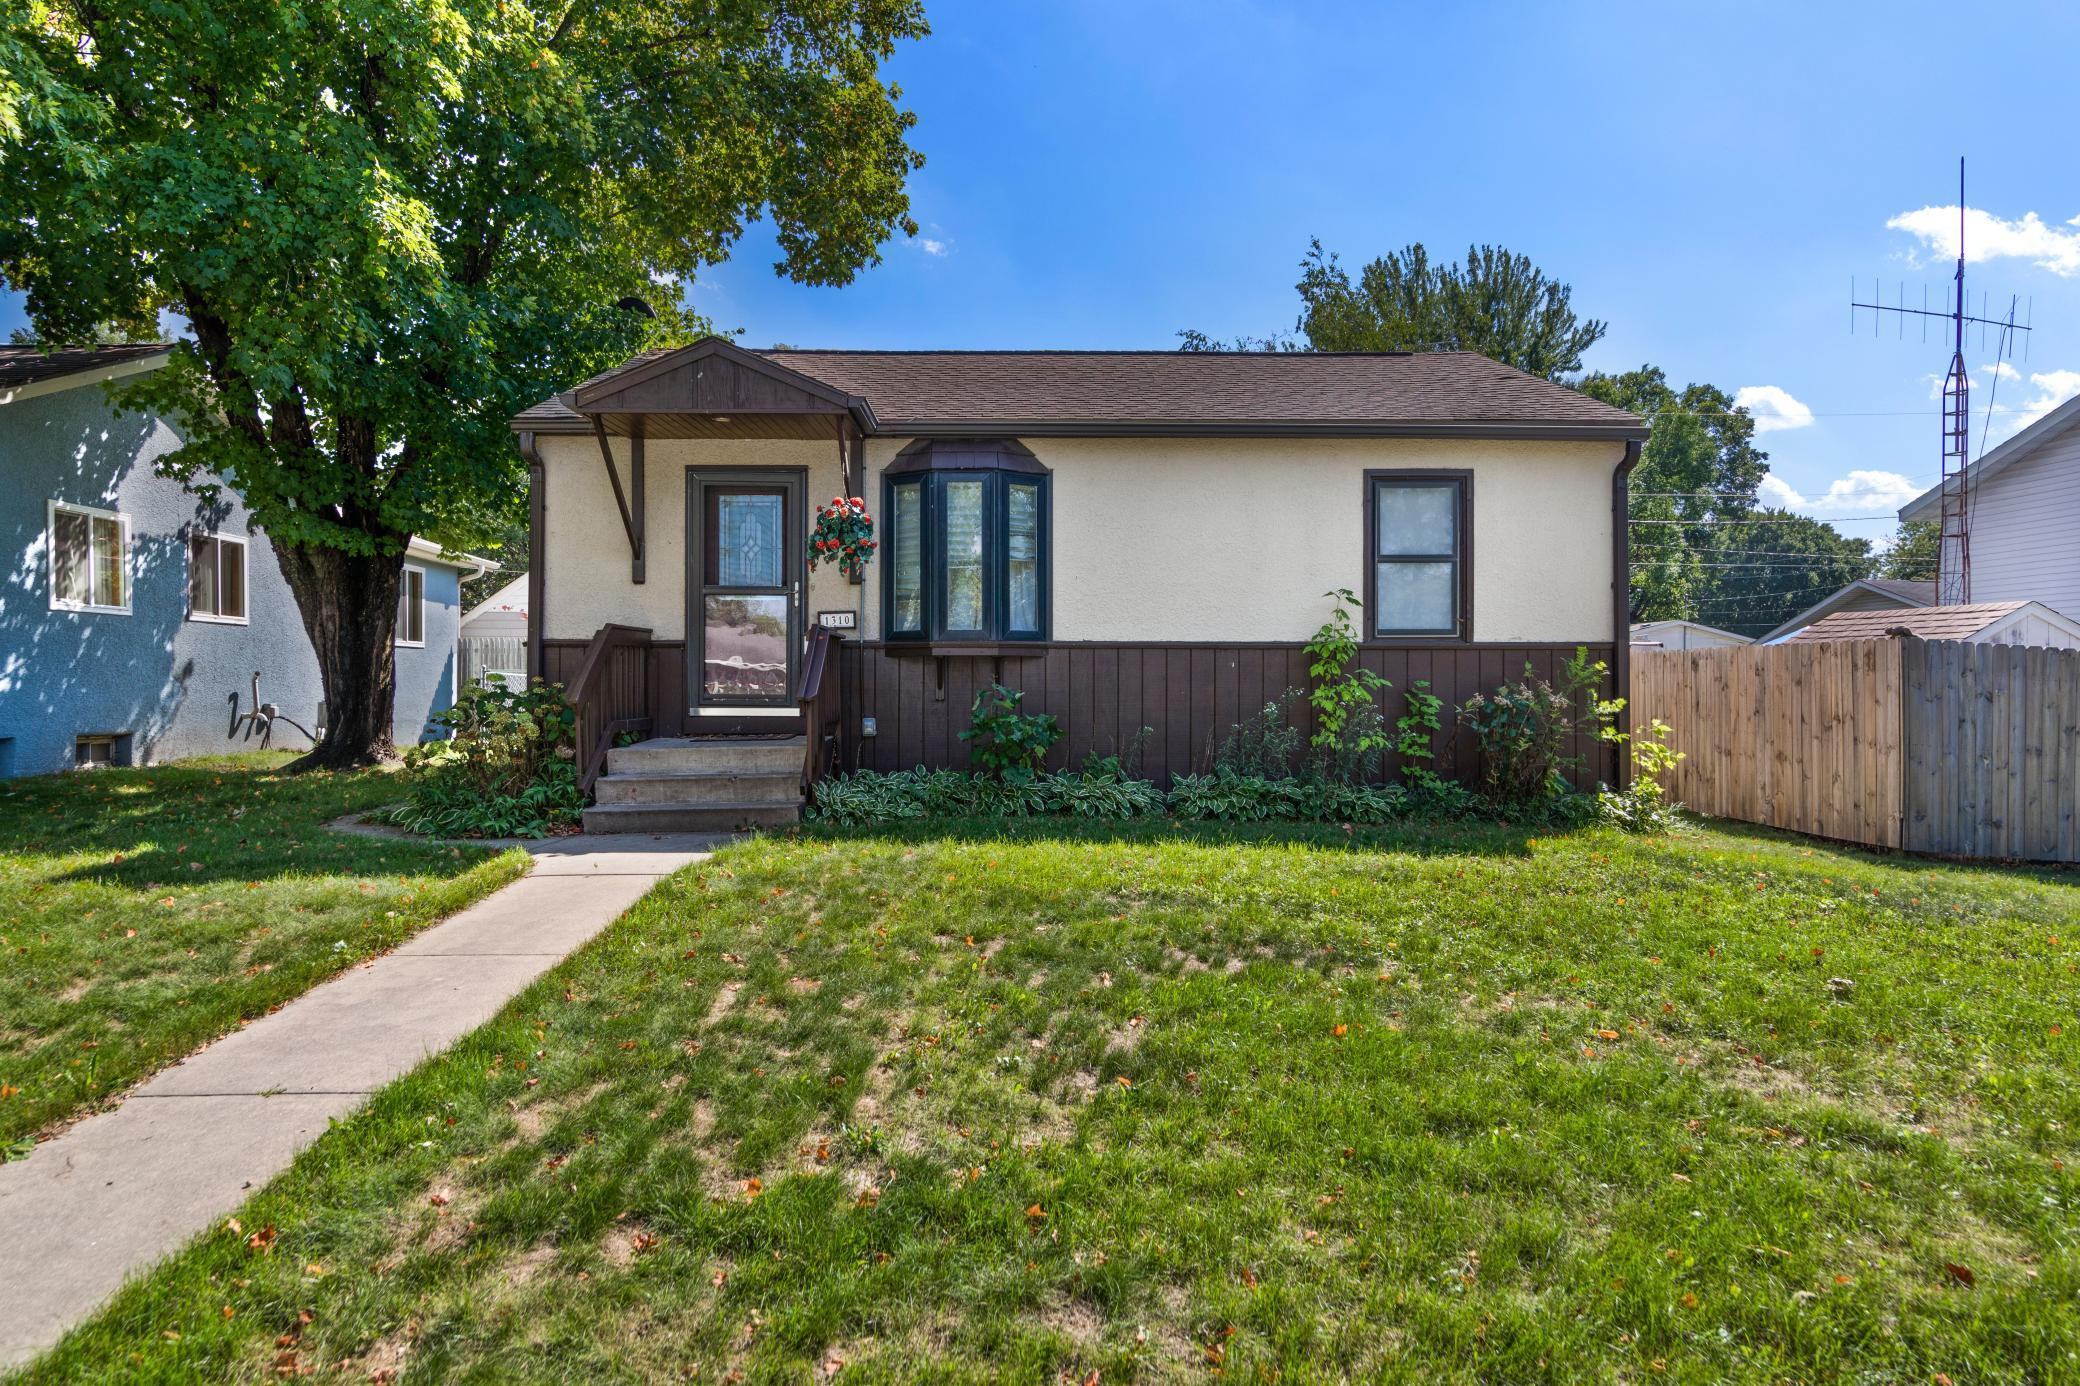 Great 4 bedroom home located in the heart of Brainerd! Newly remodeled basement with large 4th bedroom added. Fenced in backyard, updated appliances, and new wood flooring. Close to Rice Lake! Come and check it out!